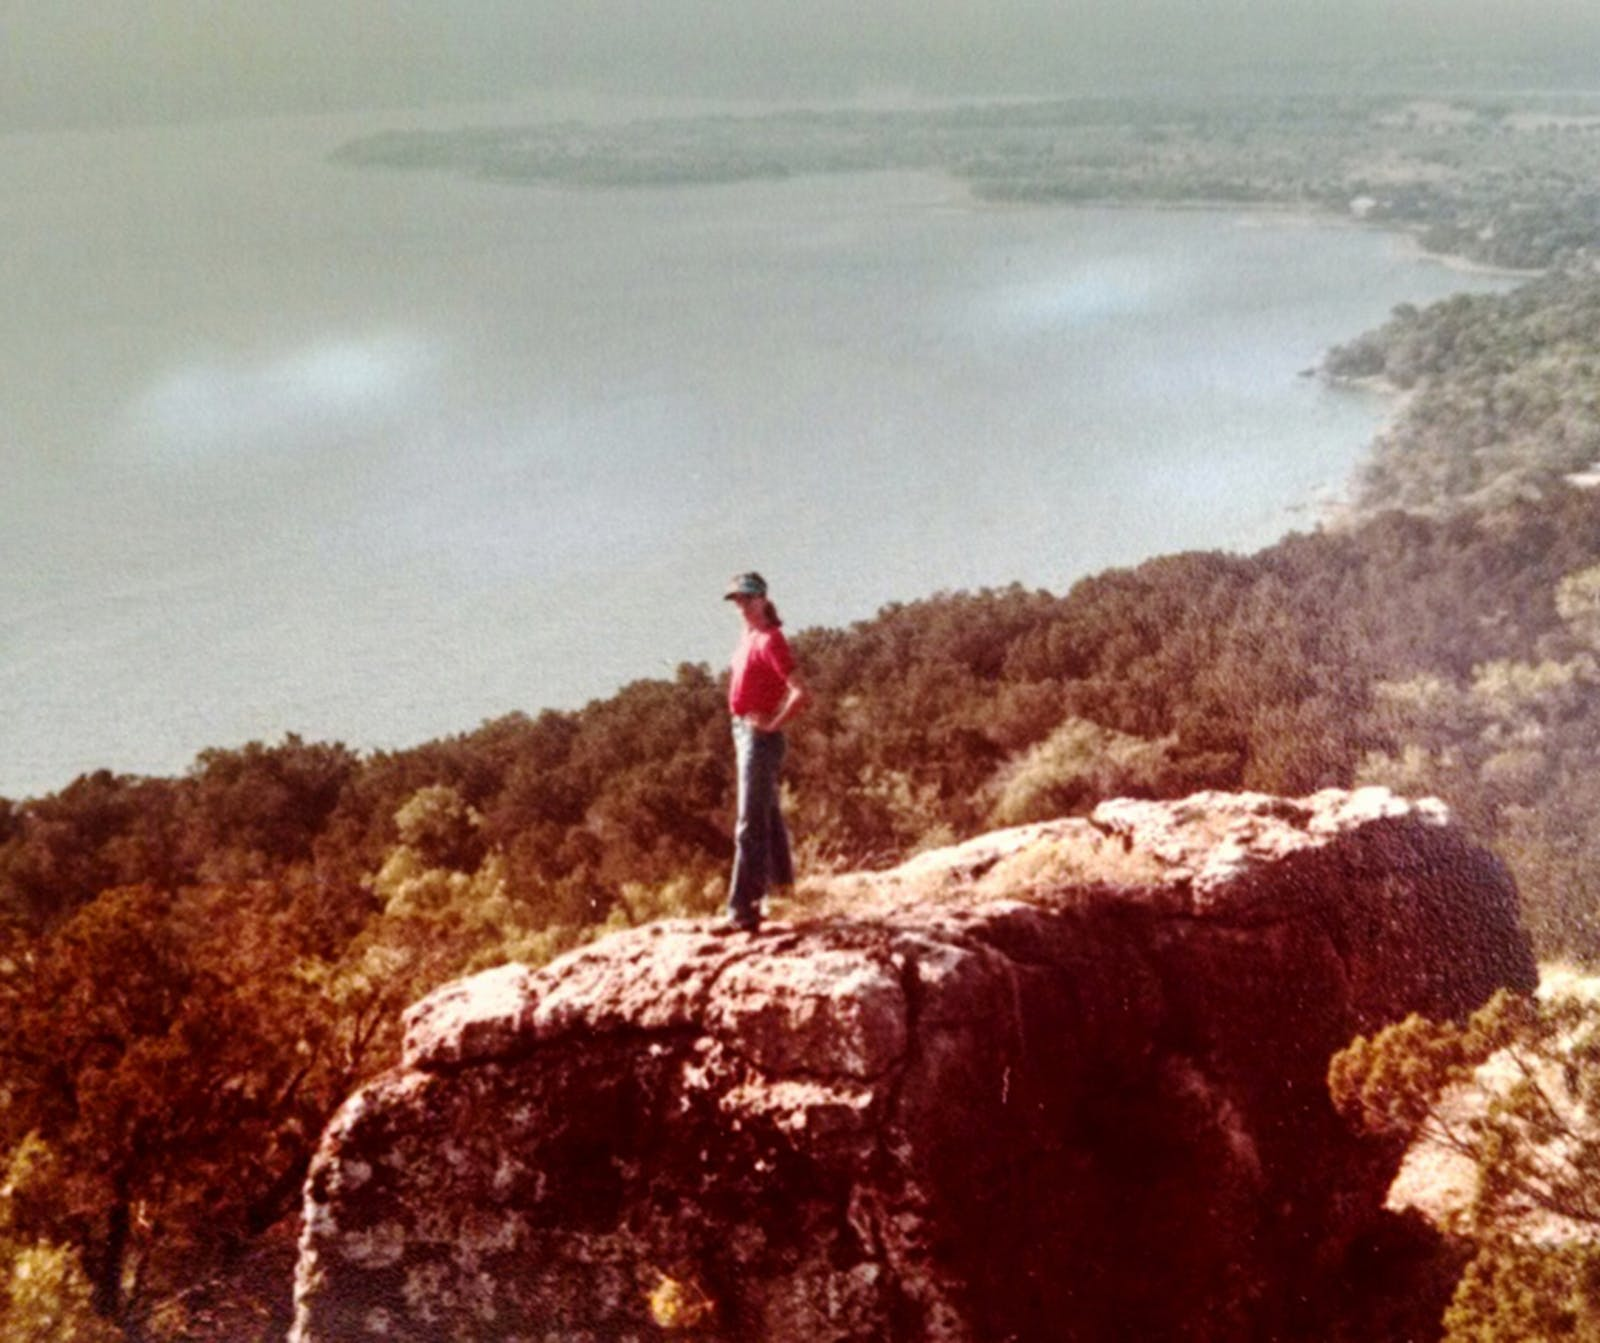 The author's mother on Johnson's Peak in 1978.